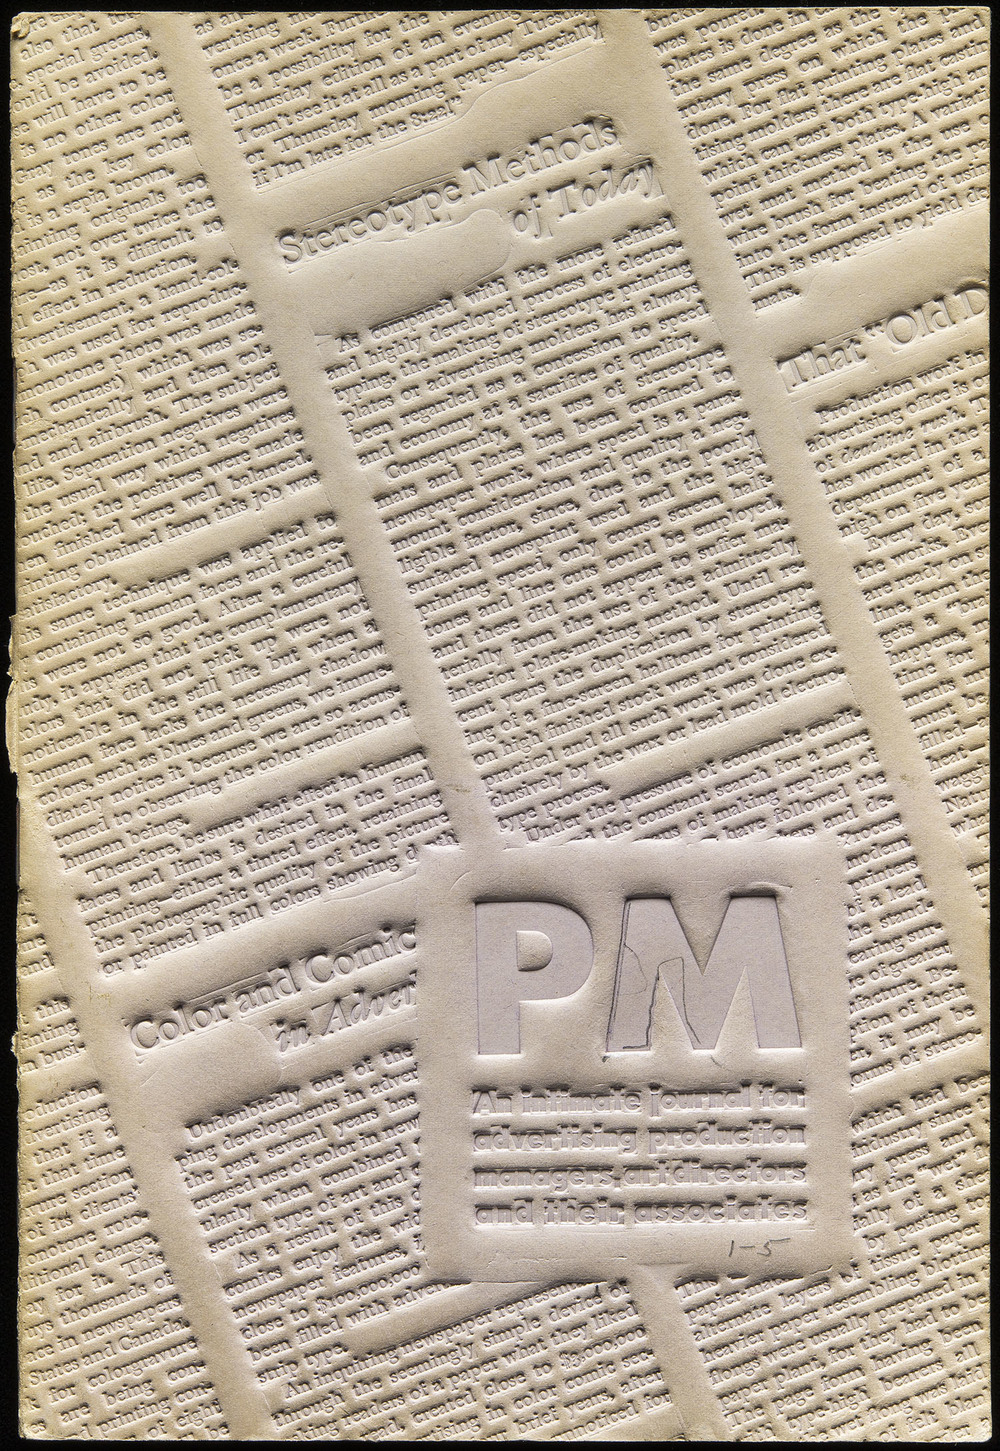 A flong, or stereotype matrix, used as the cover of PM magazine, New York, 1935, 13.6 x 20 cm